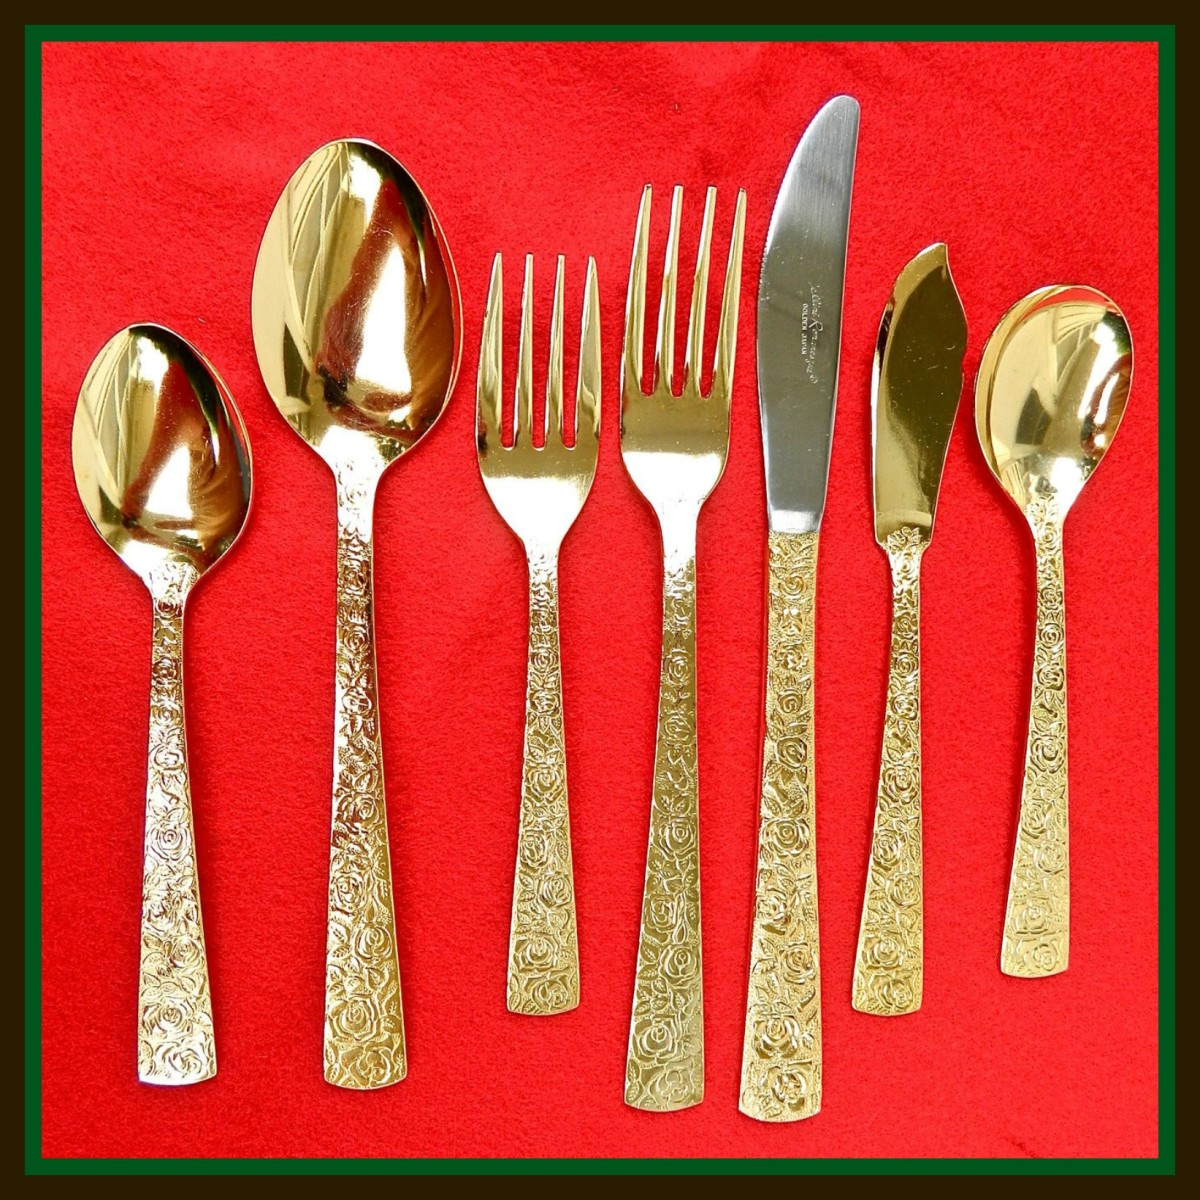 Cellini Romanesque Electroplate Golden Flatware made in Japan